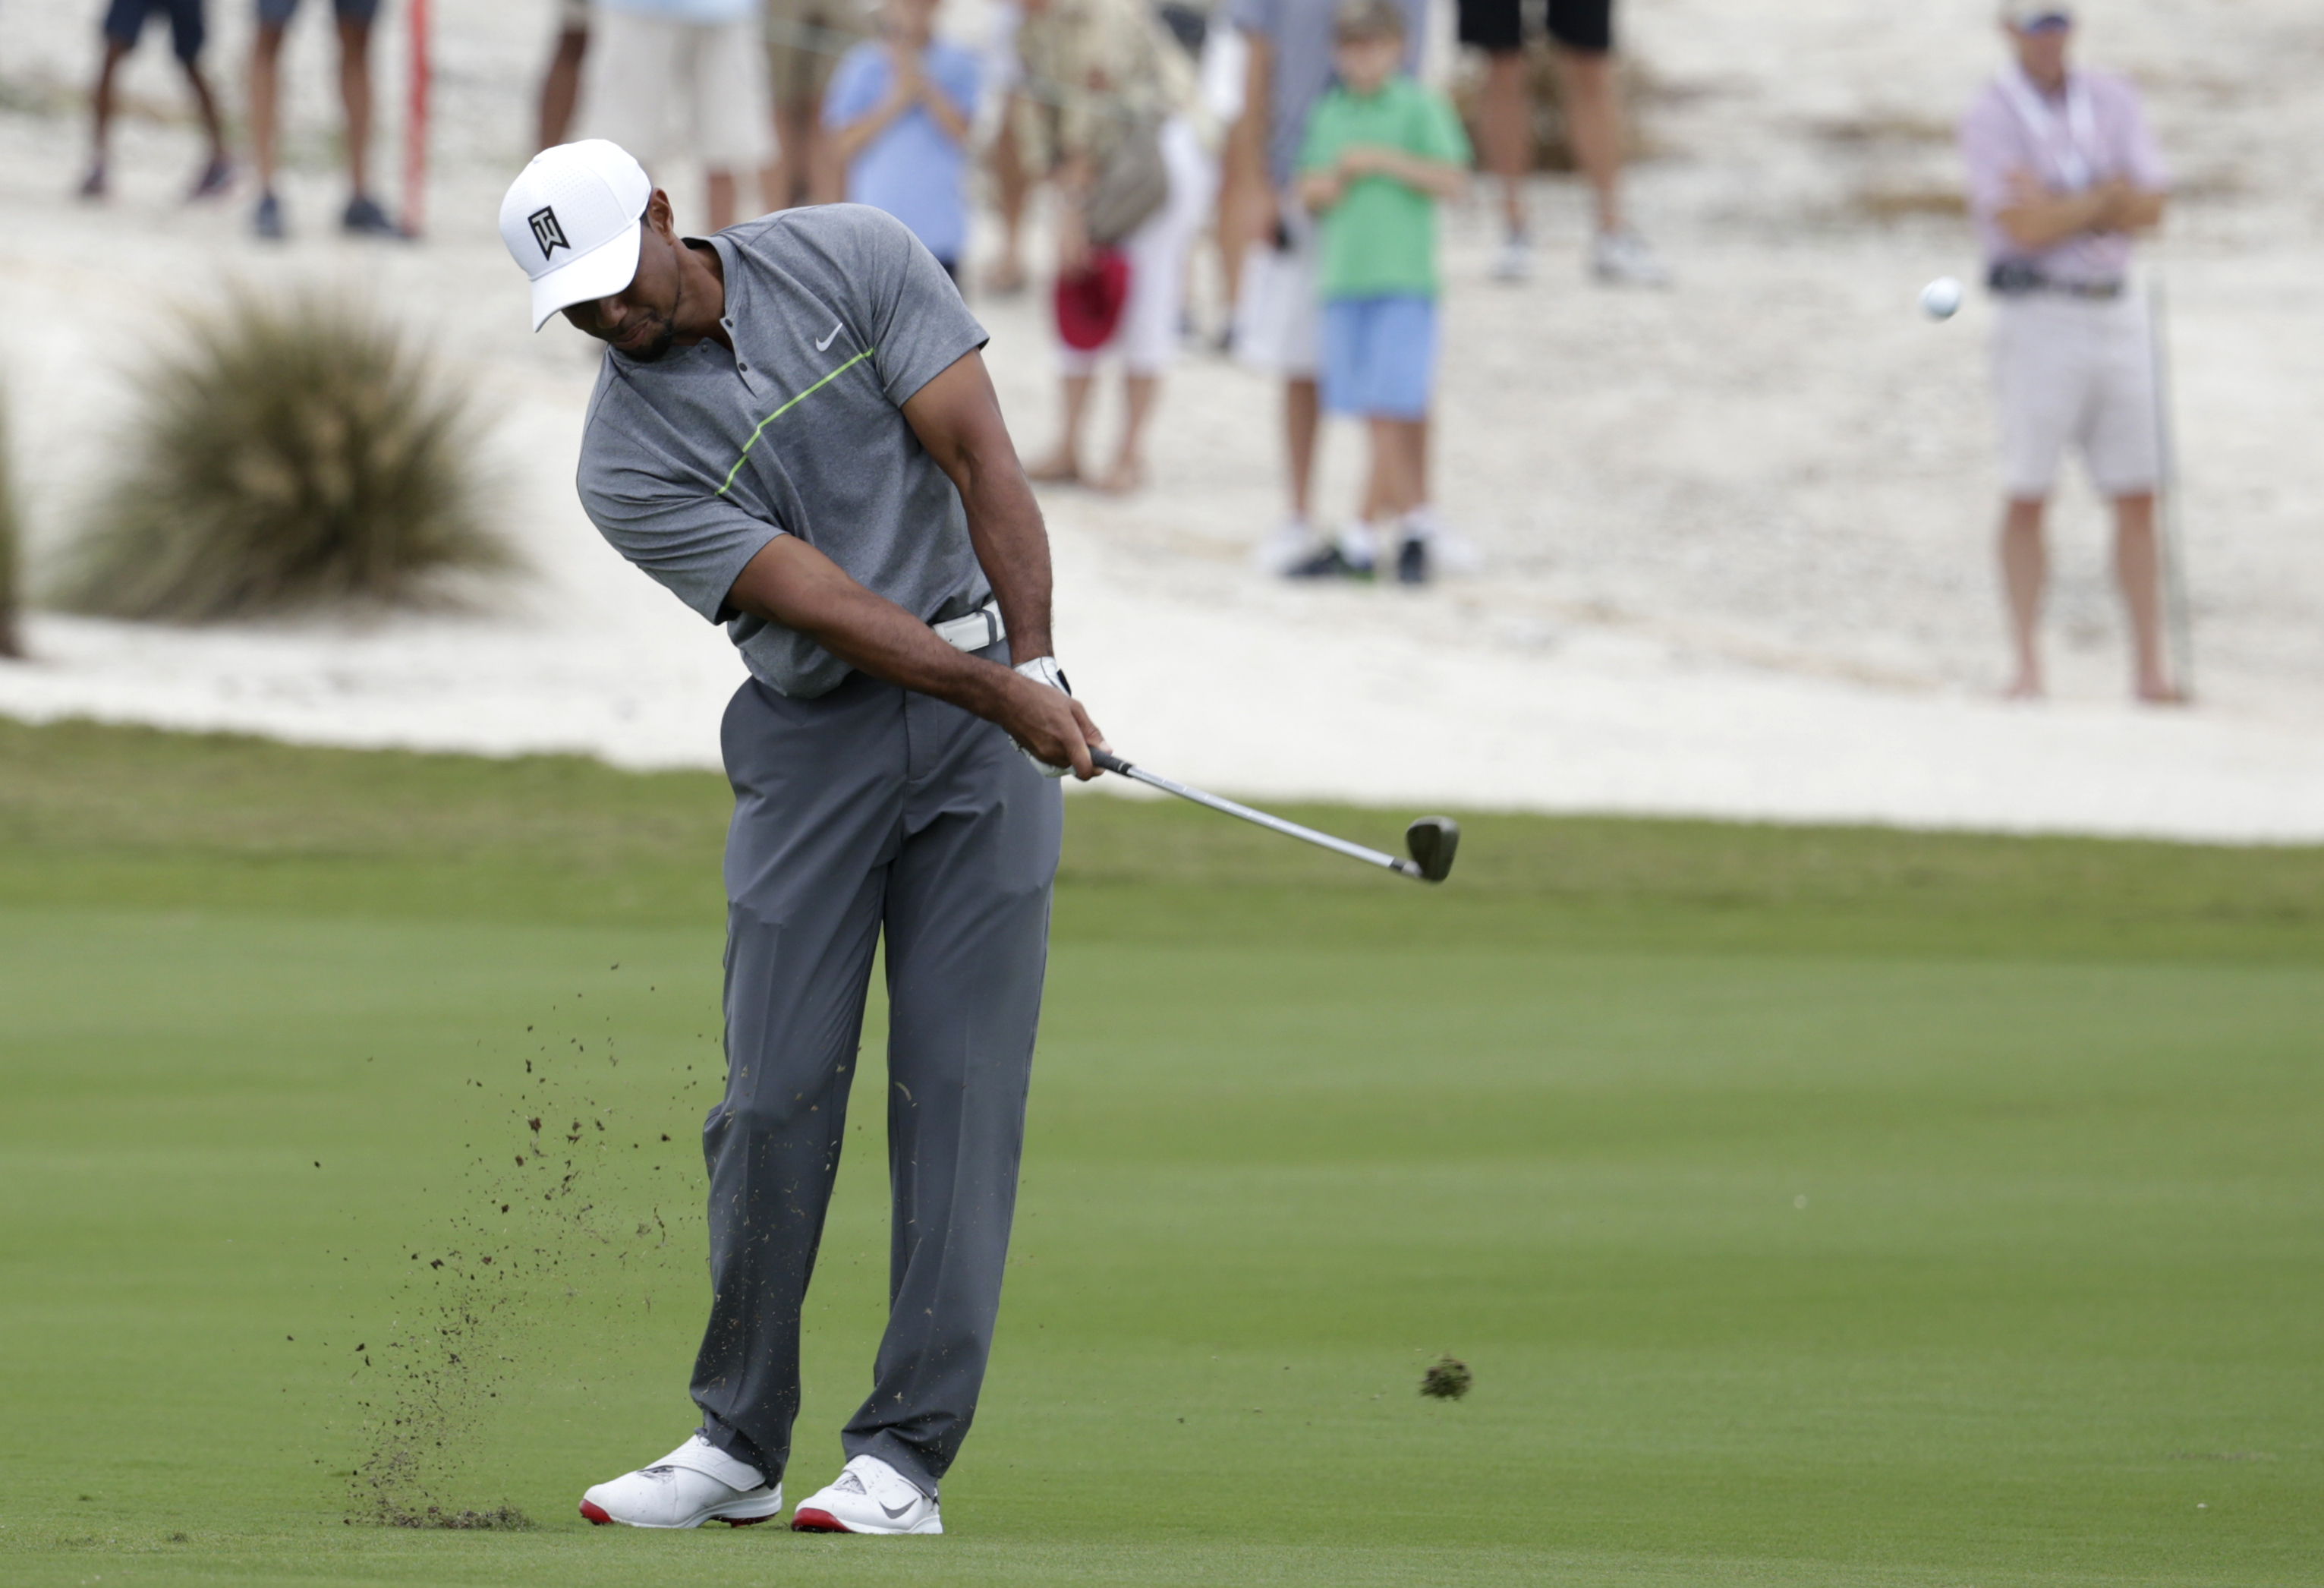 Tiger Woods hits from the first fairway during the third round at the Hero World Challenge golf tournament, Saturday, Dec. 3, 2016, in Nassau, Bahamas. (AP Photo/Lynne Sladky)